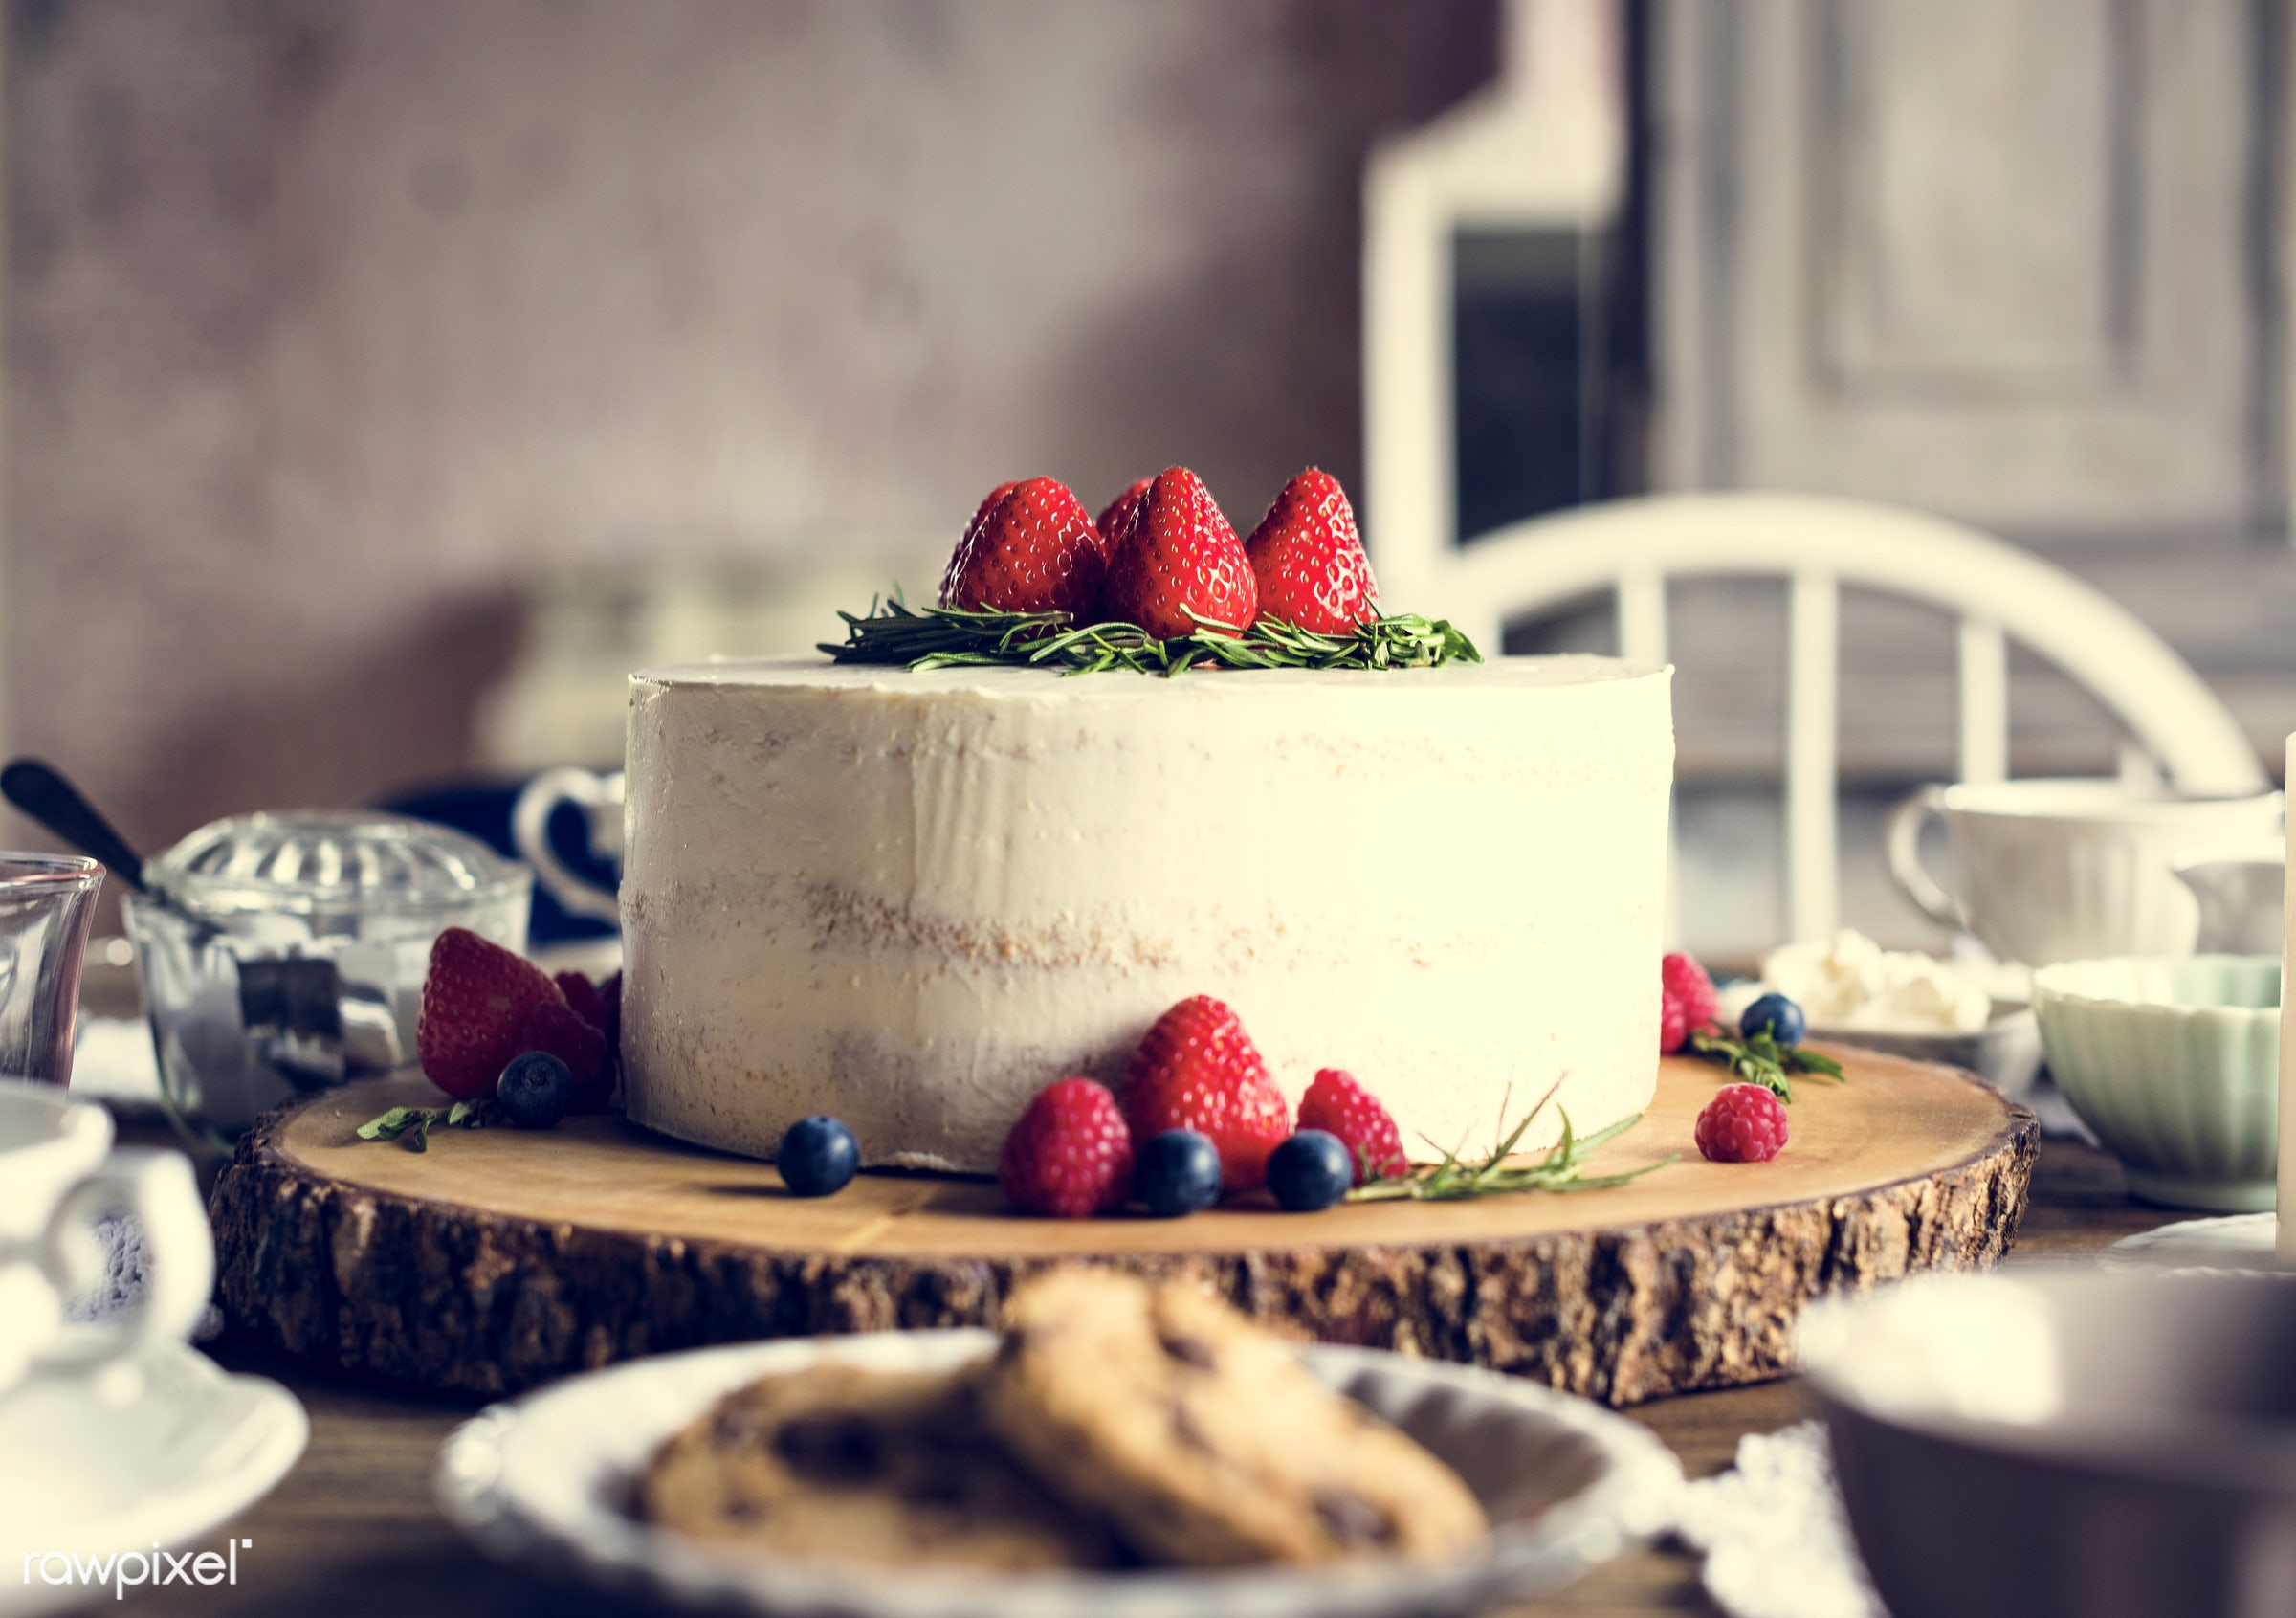 dish, nobody, recipe, party, tea, tea party, break, bakery, frosting, event, gourmet, dessert, cake, fruit, strawberry,...